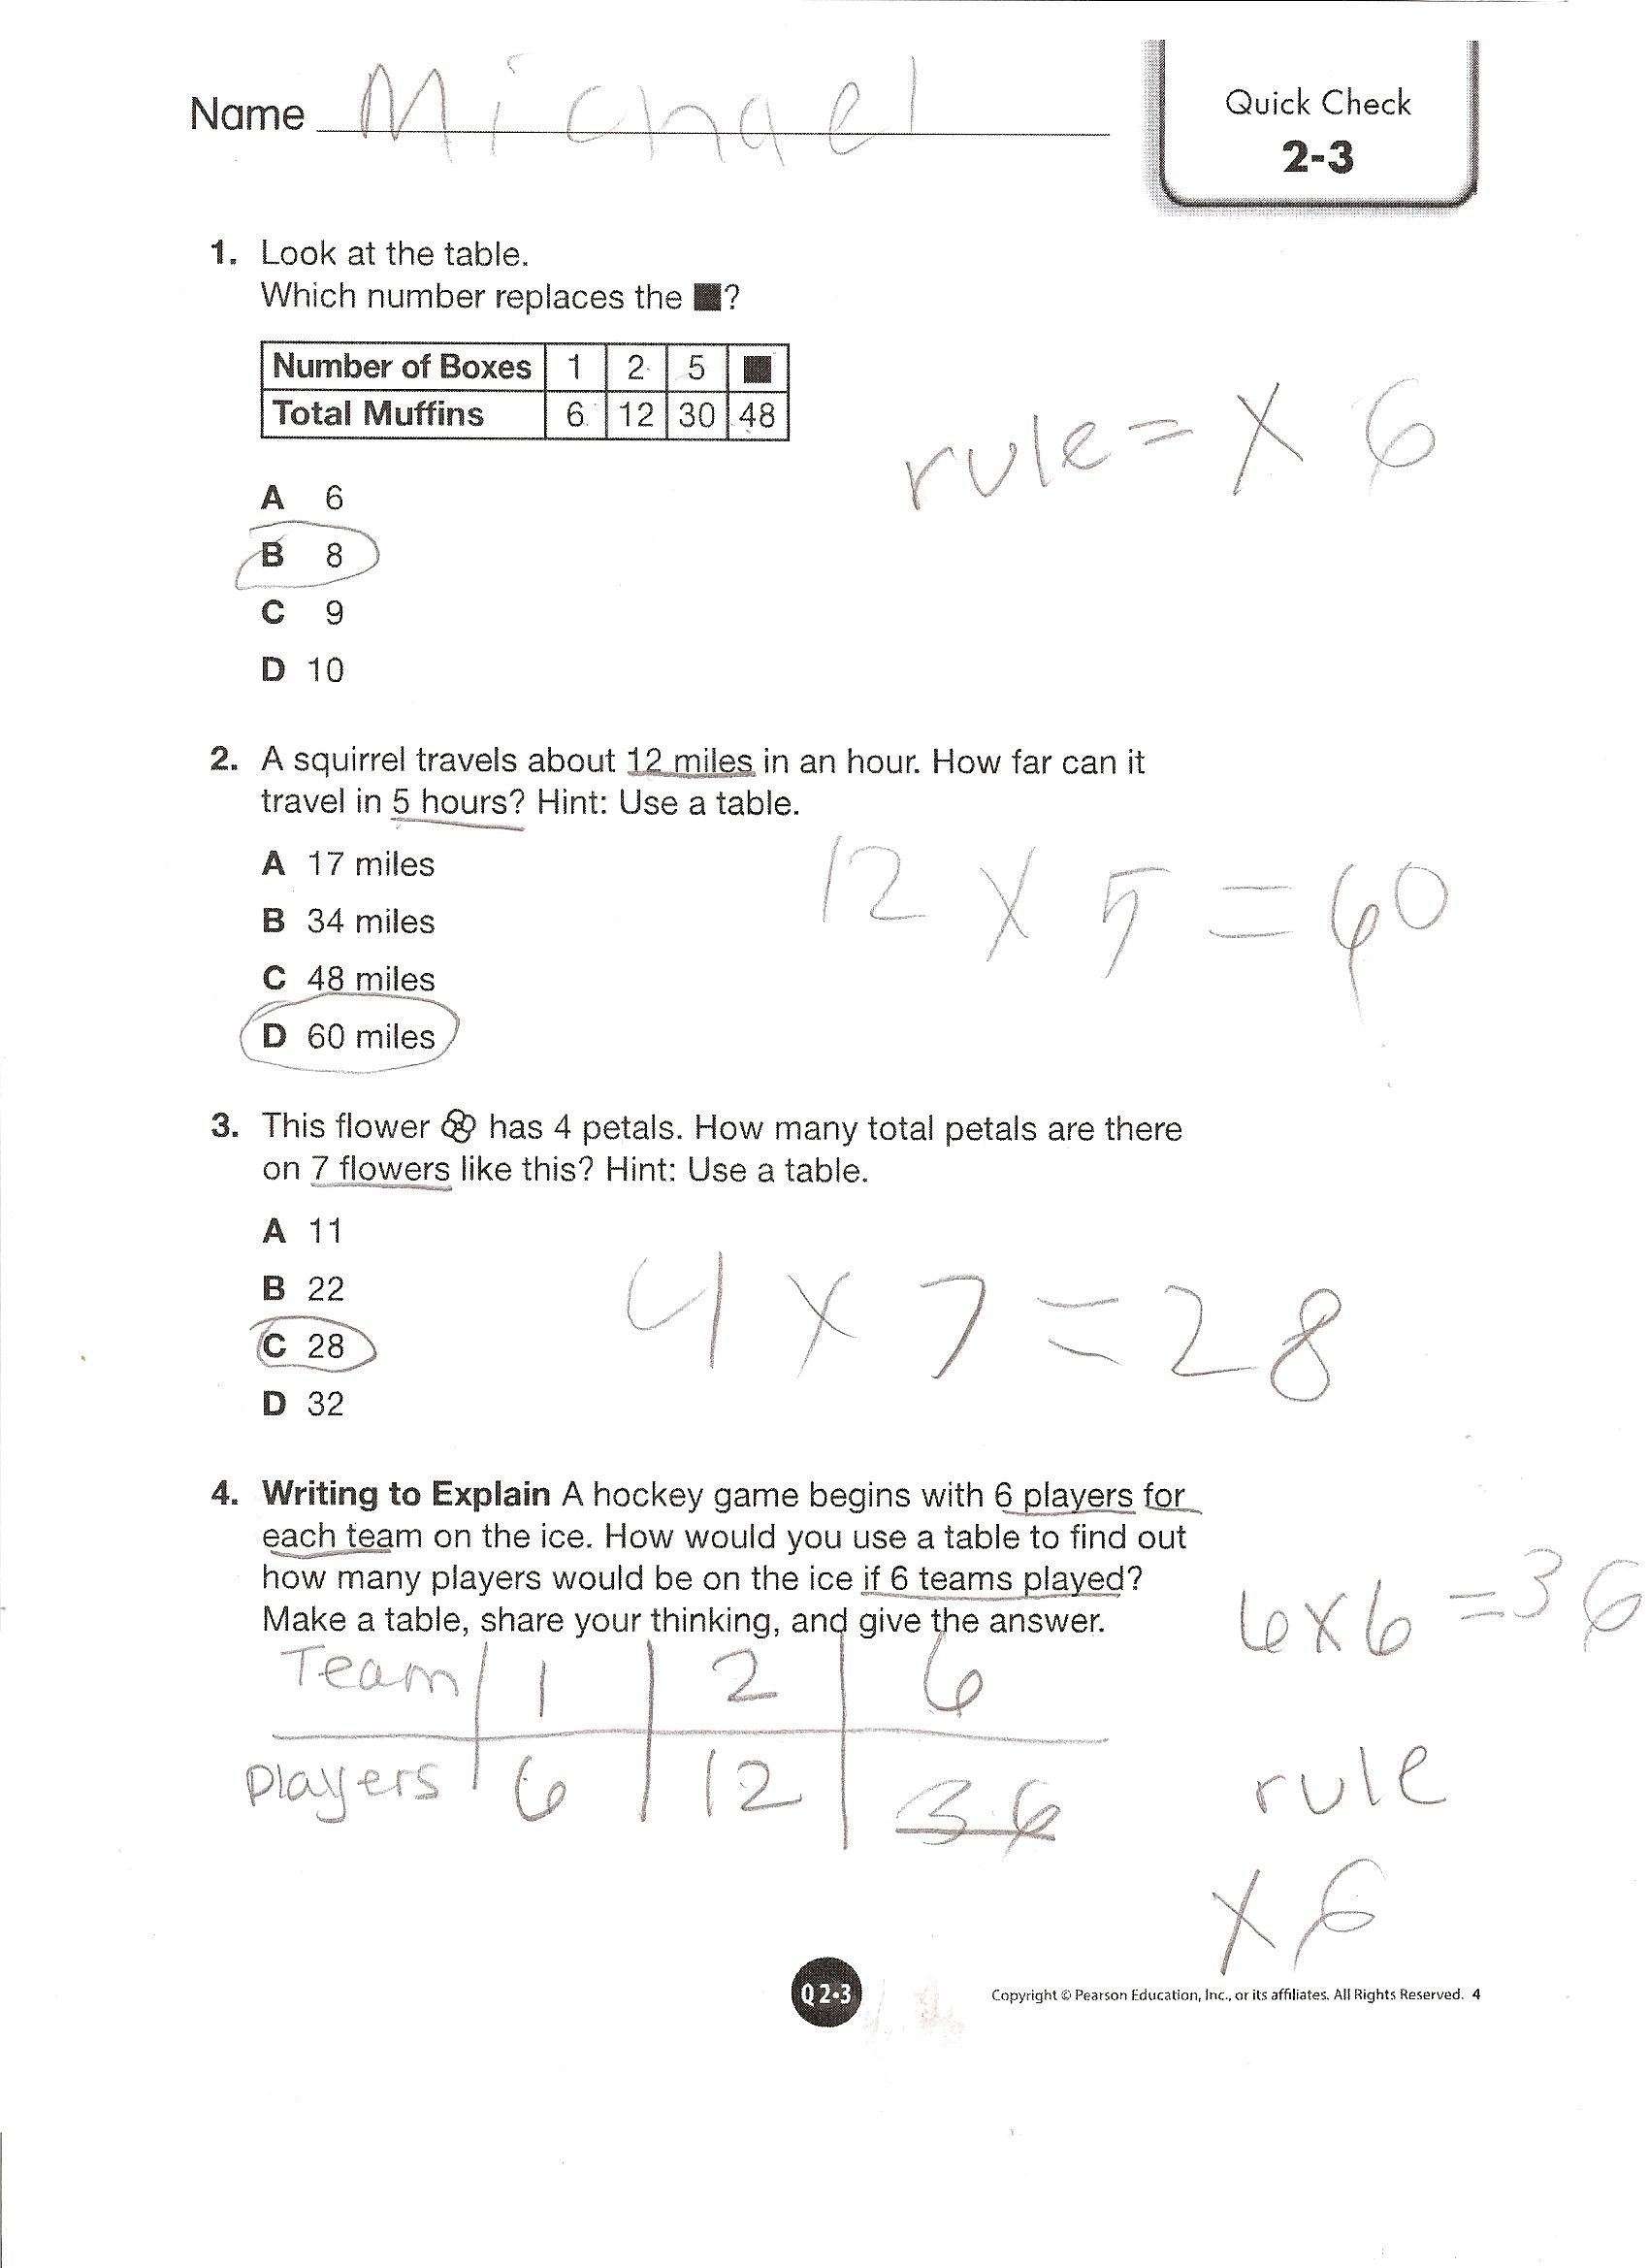 Worksheets 6th Grade Math Common Core Worksheets envision math grade 4 topic 2 3 quick check 4th check